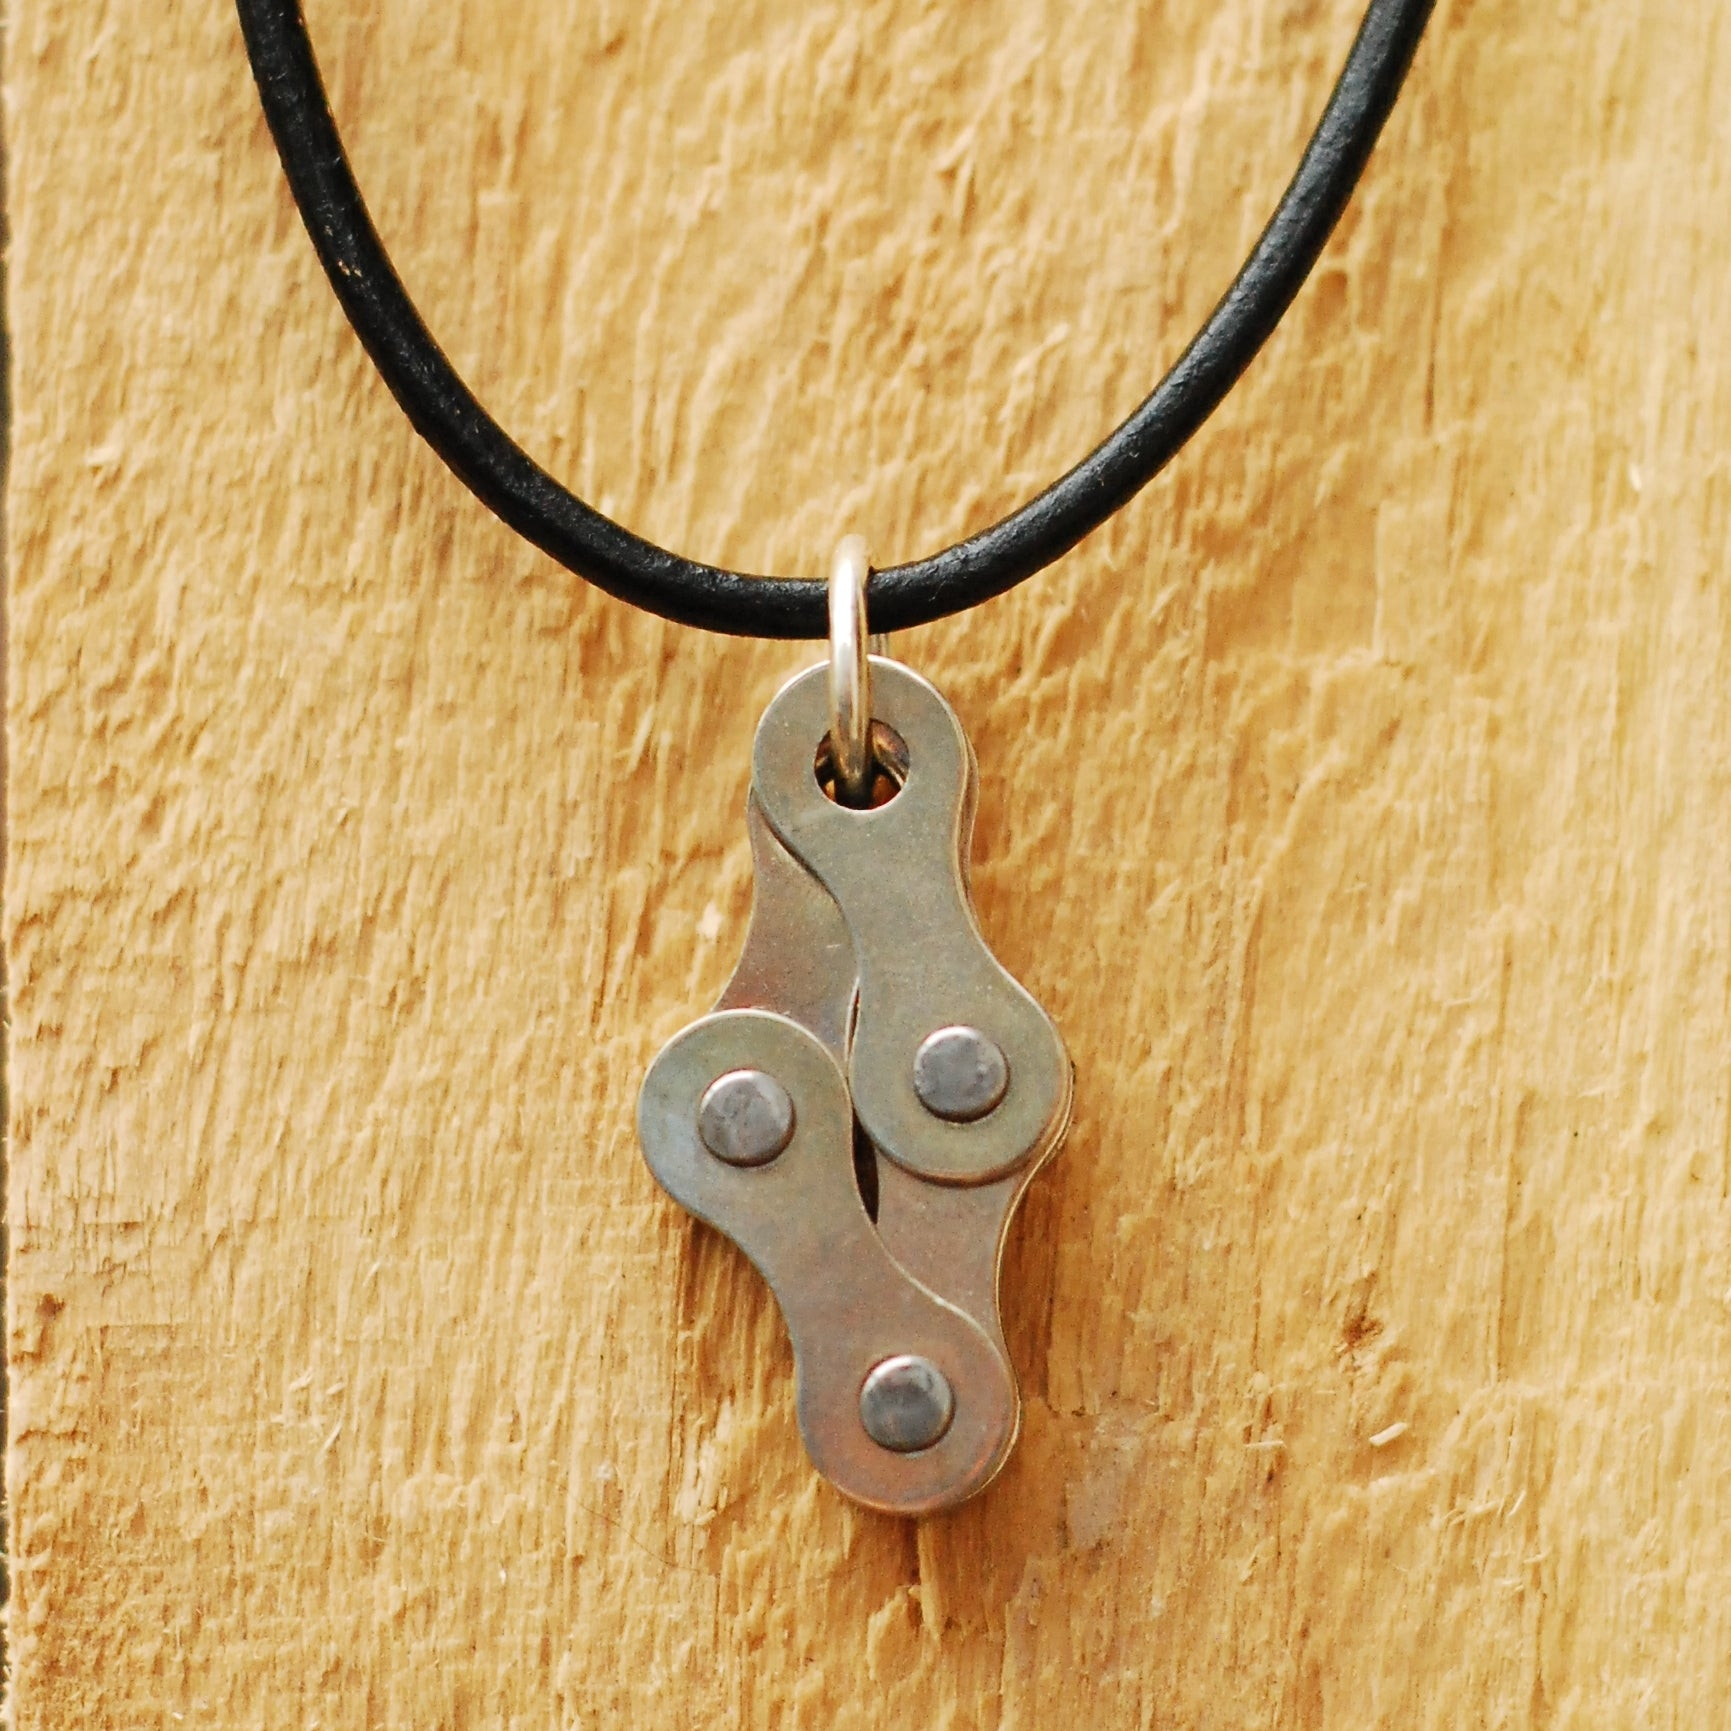 Diamond Recycled Bike Chain Pendant Necklace